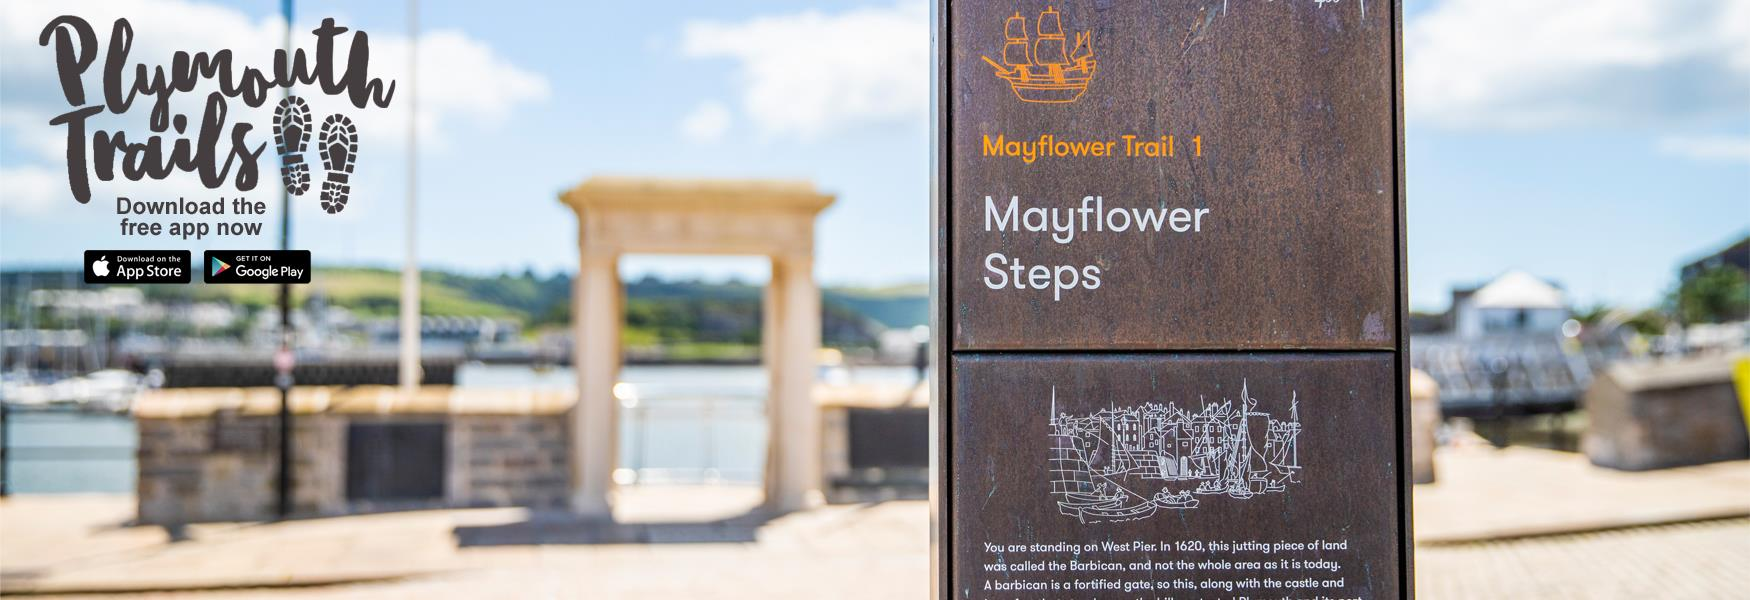 Mayflower Trail - Download the free app today